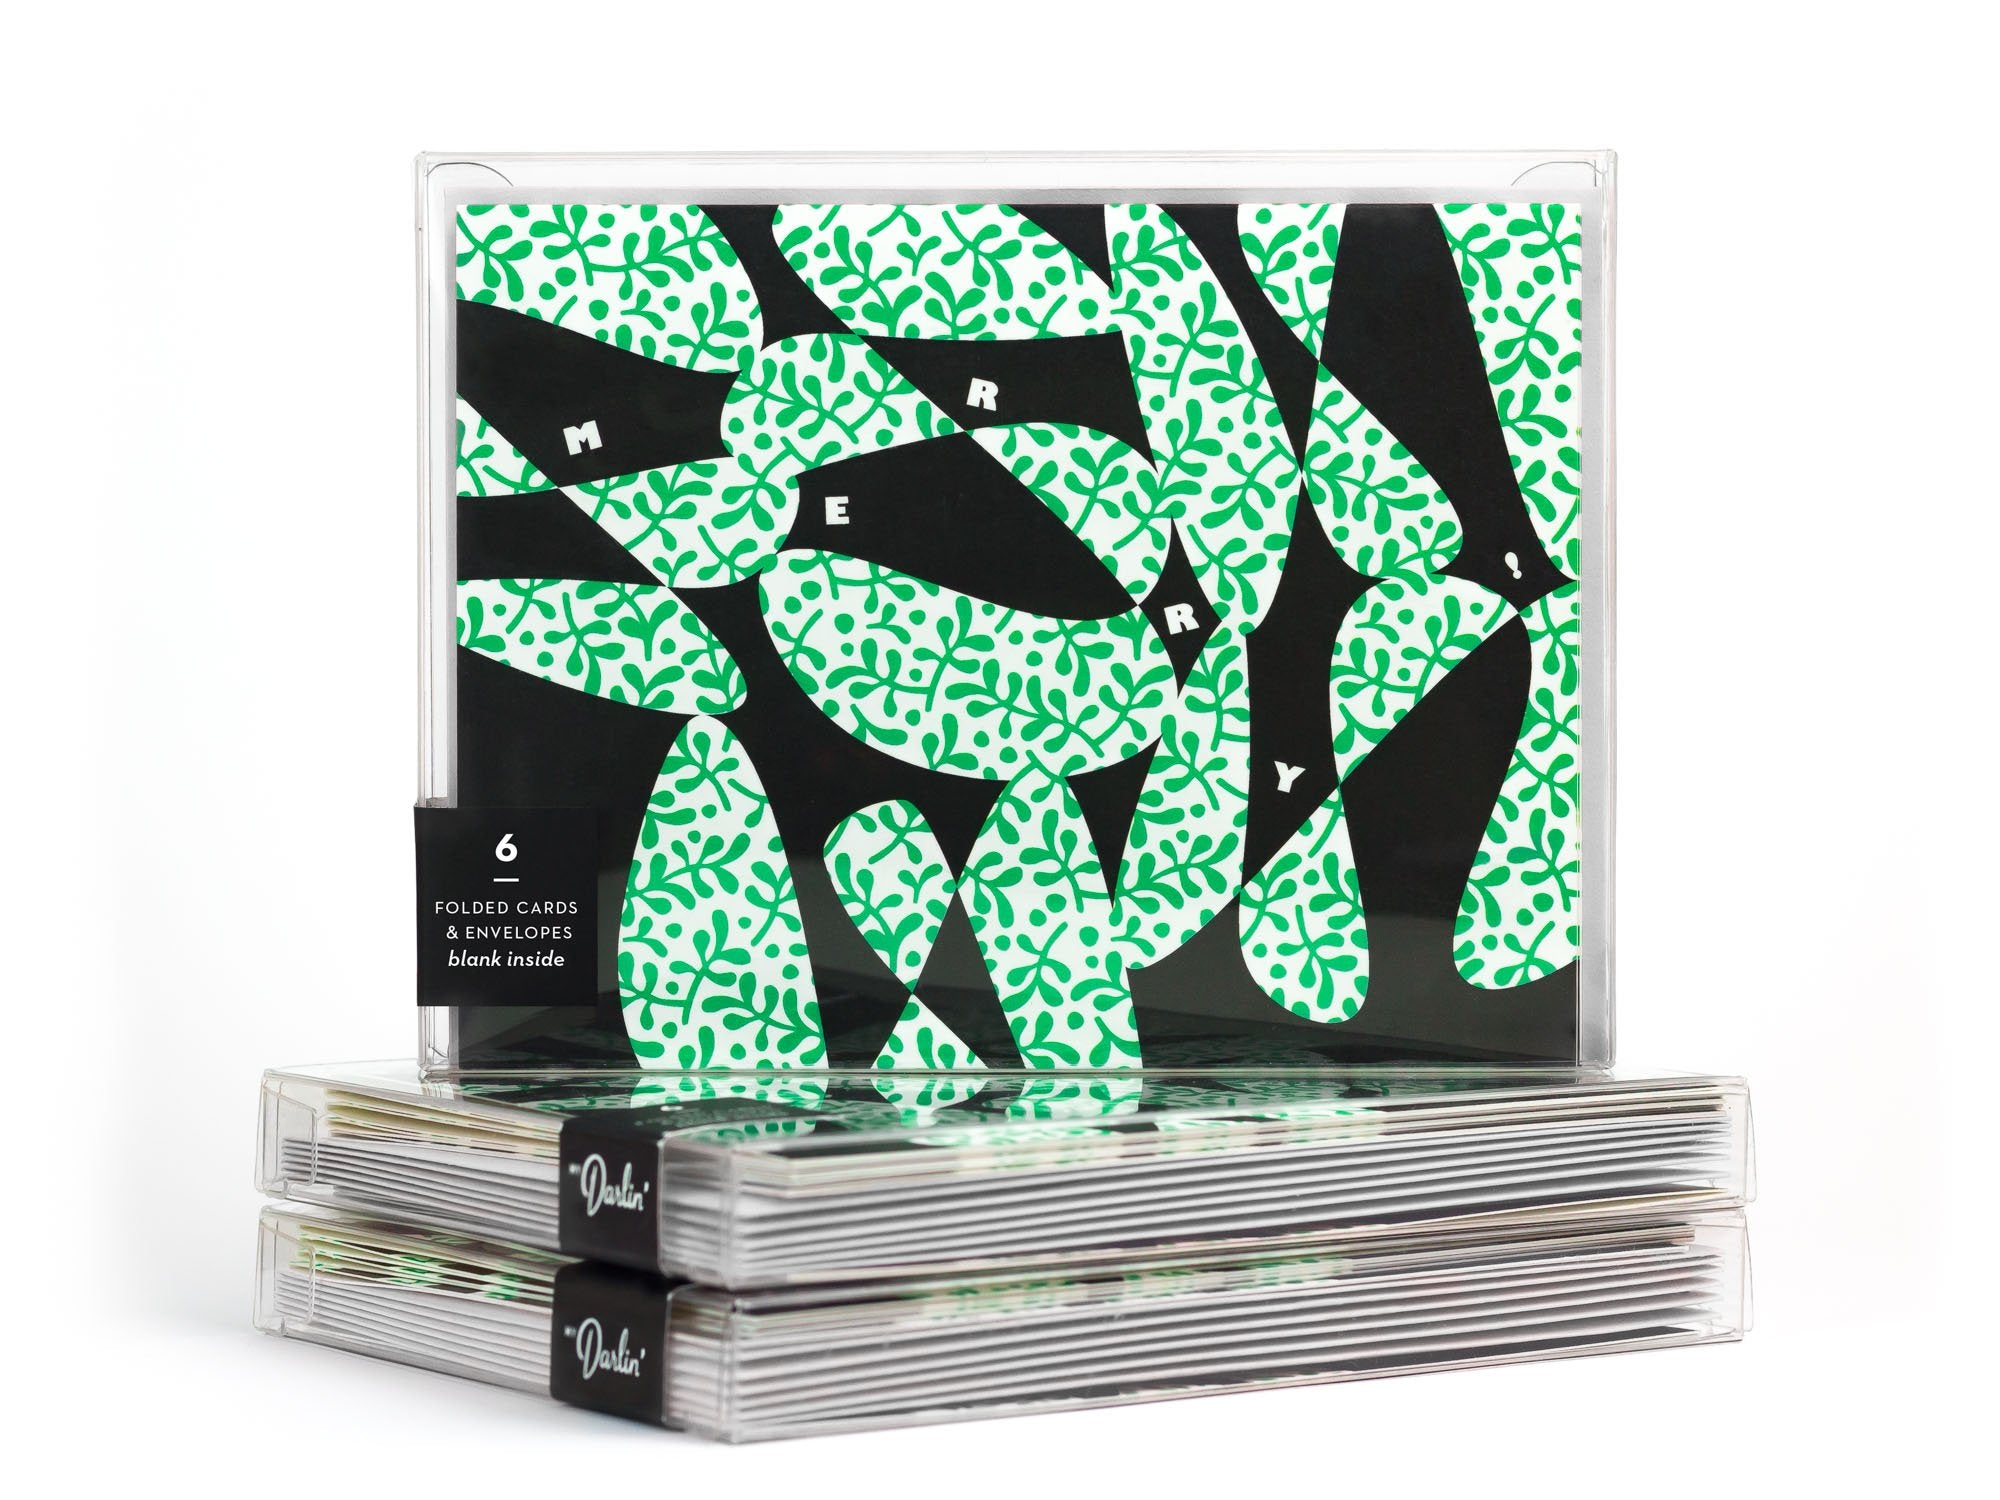 Merry abstract mistletoe pattern Christmas card boxed set. Designed by @mydarlin_bk